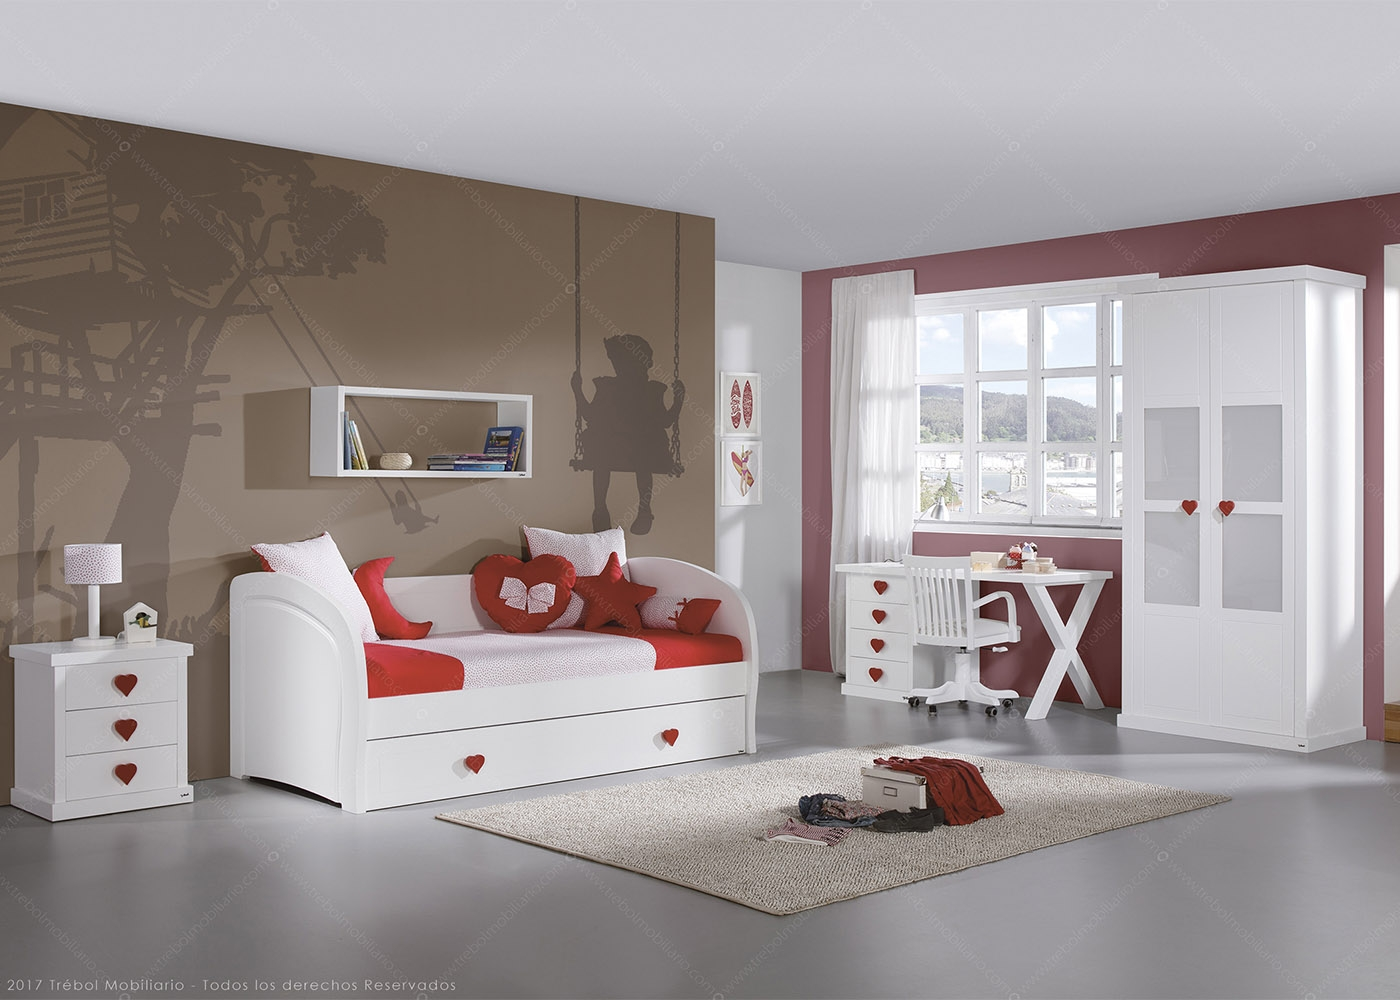 chambre fille design et de qualit volutive chez ksl living. Black Bedroom Furniture Sets. Home Design Ideas